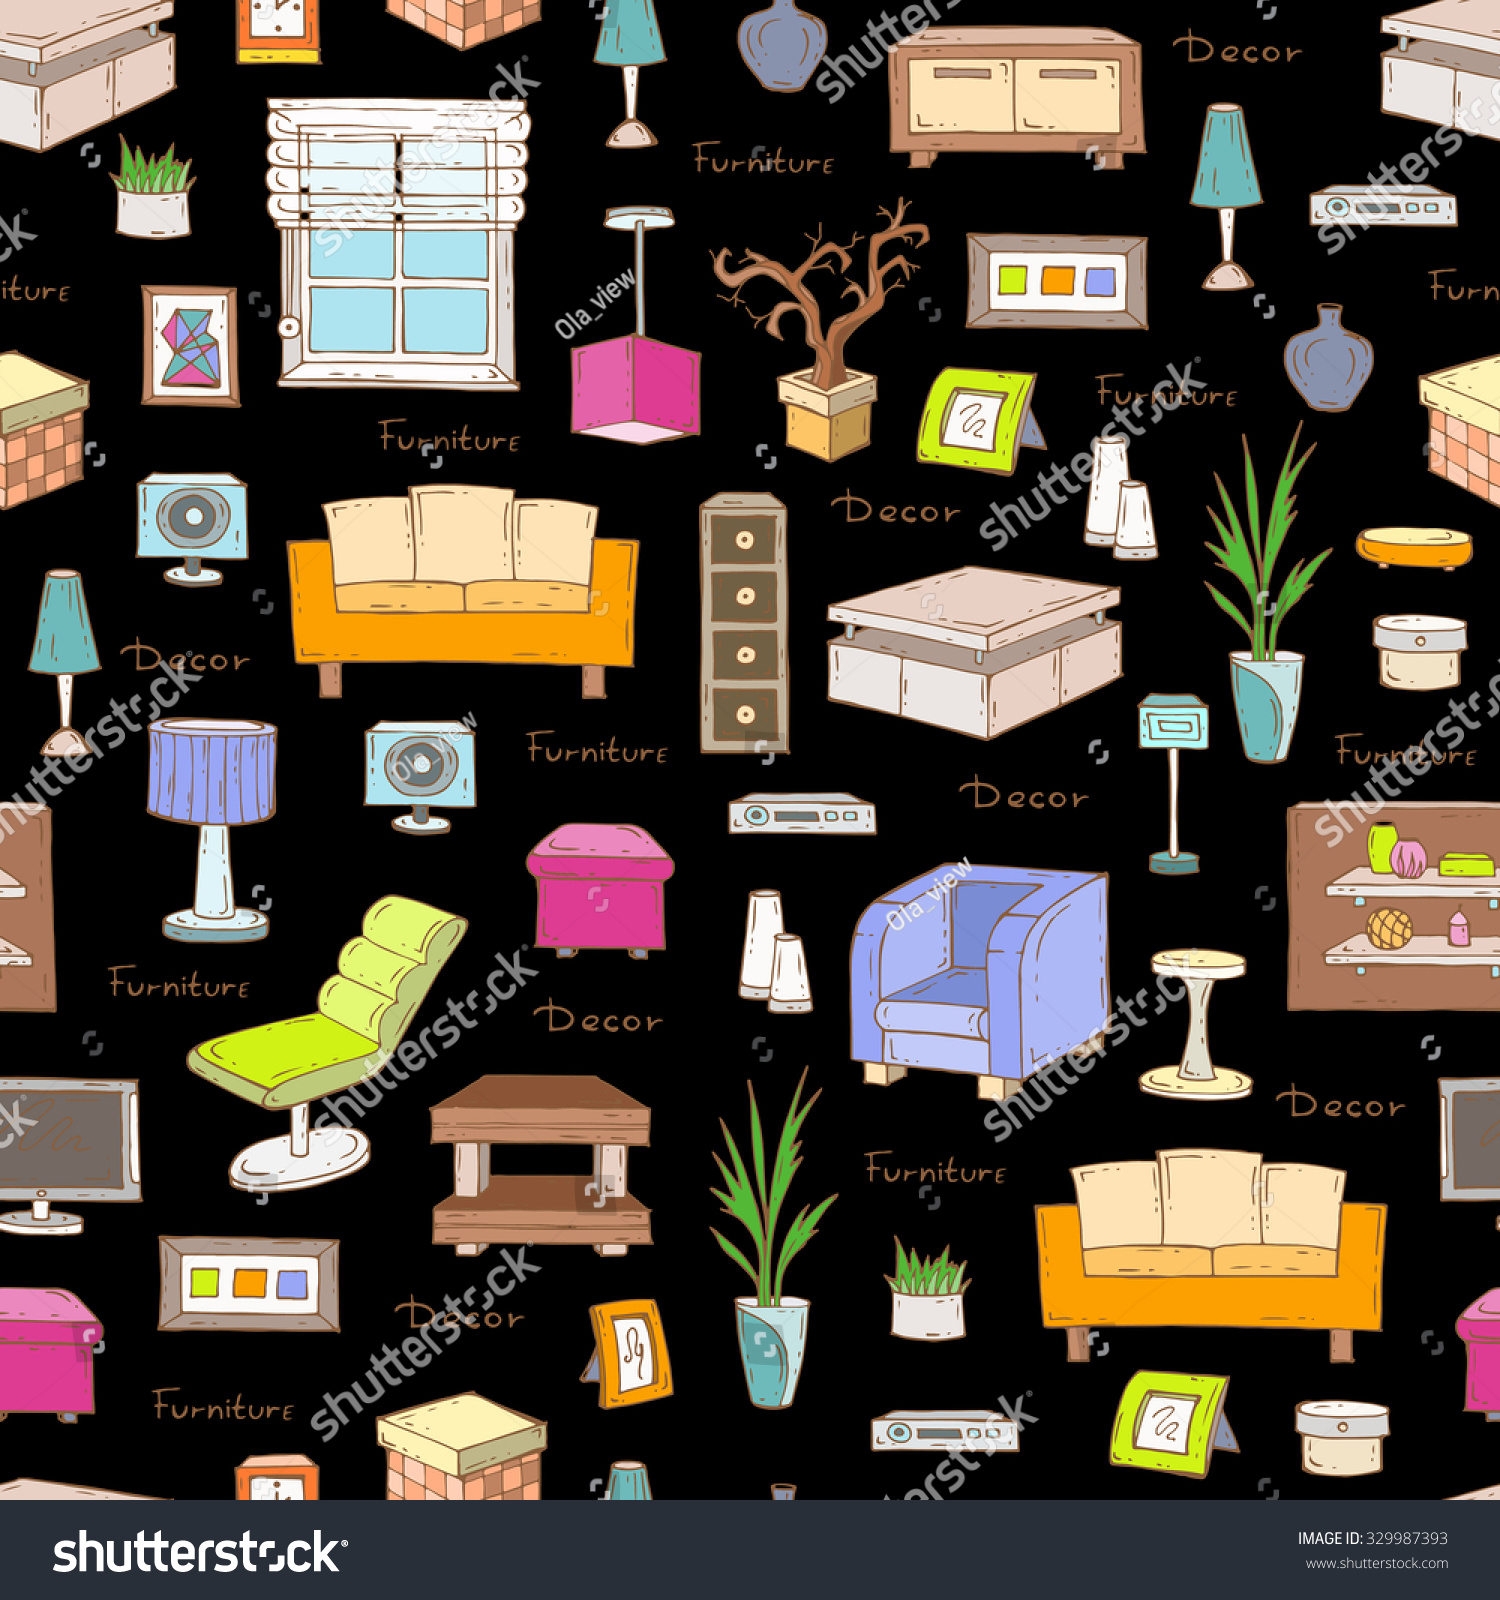 Vector Seamless Pattern Of Hand Drawn Furniture And Decorative Elements On Black Color Interior Design